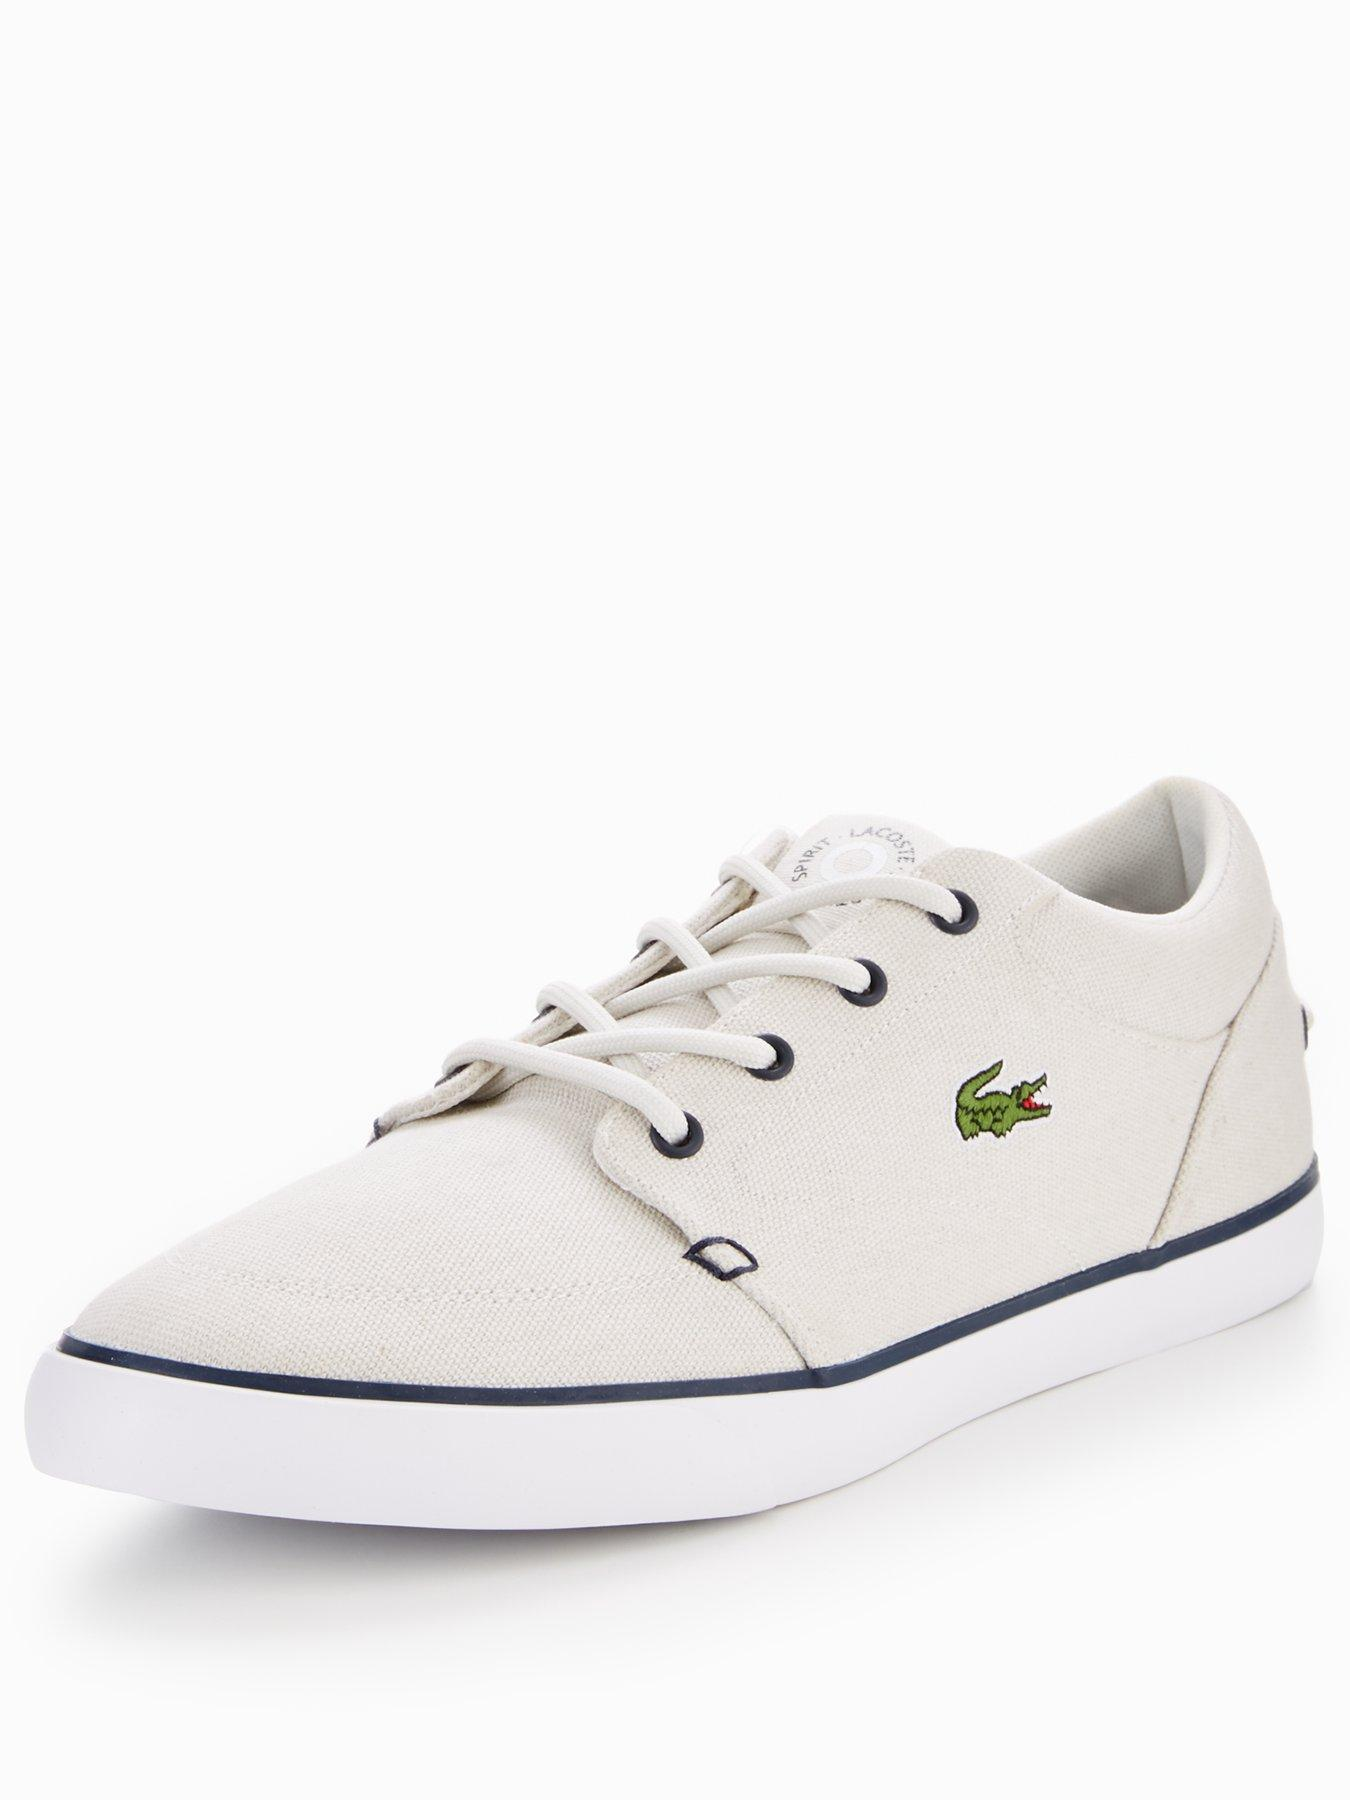 Lacoste Bayliss 118 3 Cam Plimsoll OFF_WHITE COPIBU